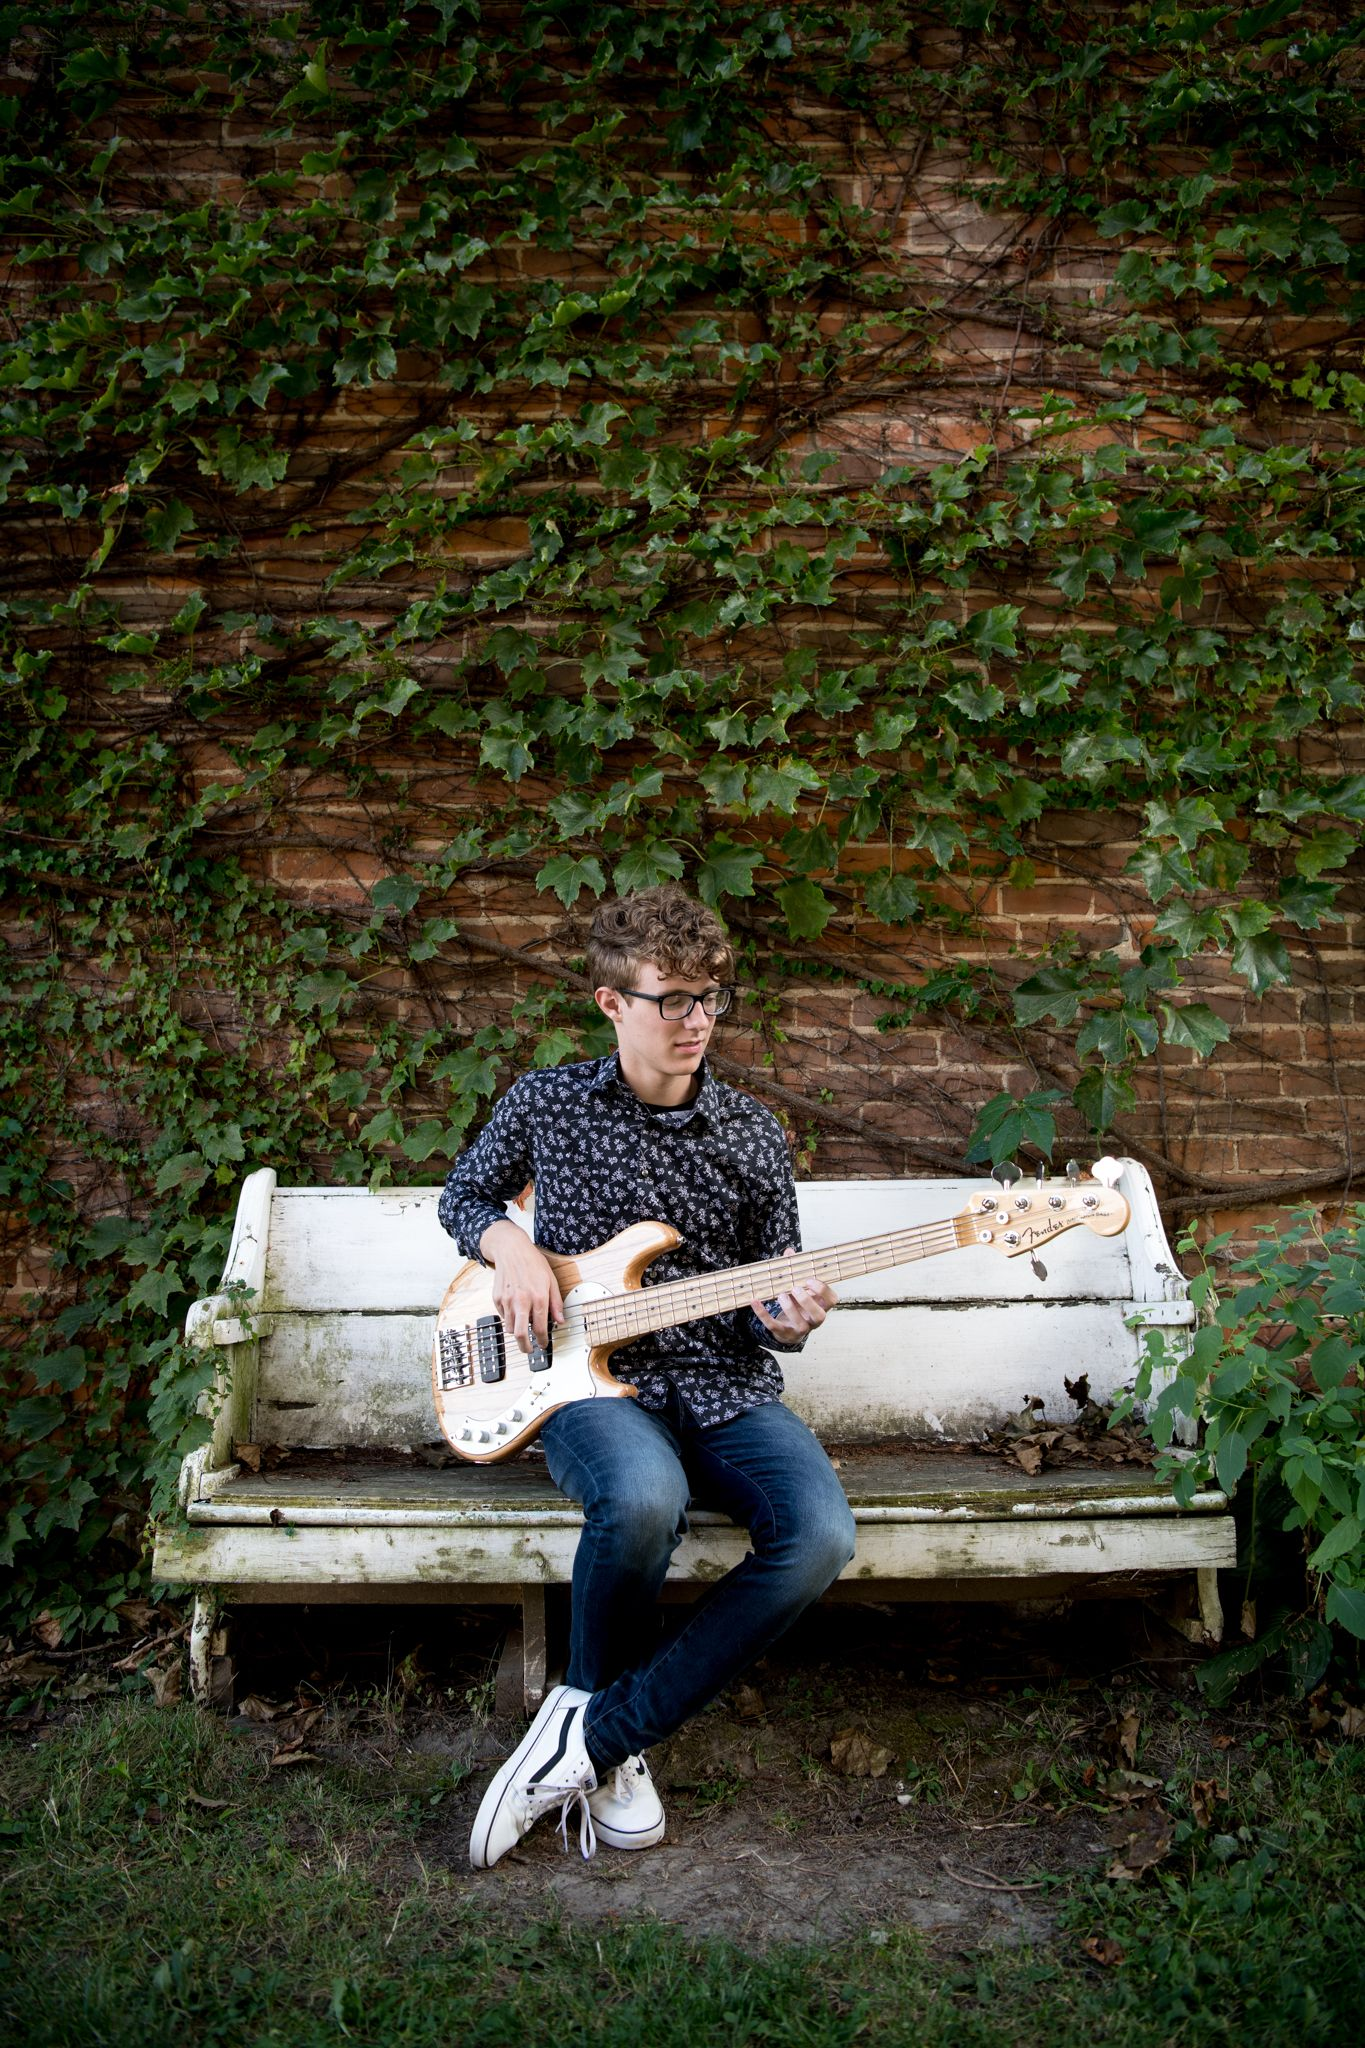 Ivy wall, old bench, guitar, brick wall, jeans, patterned shirt